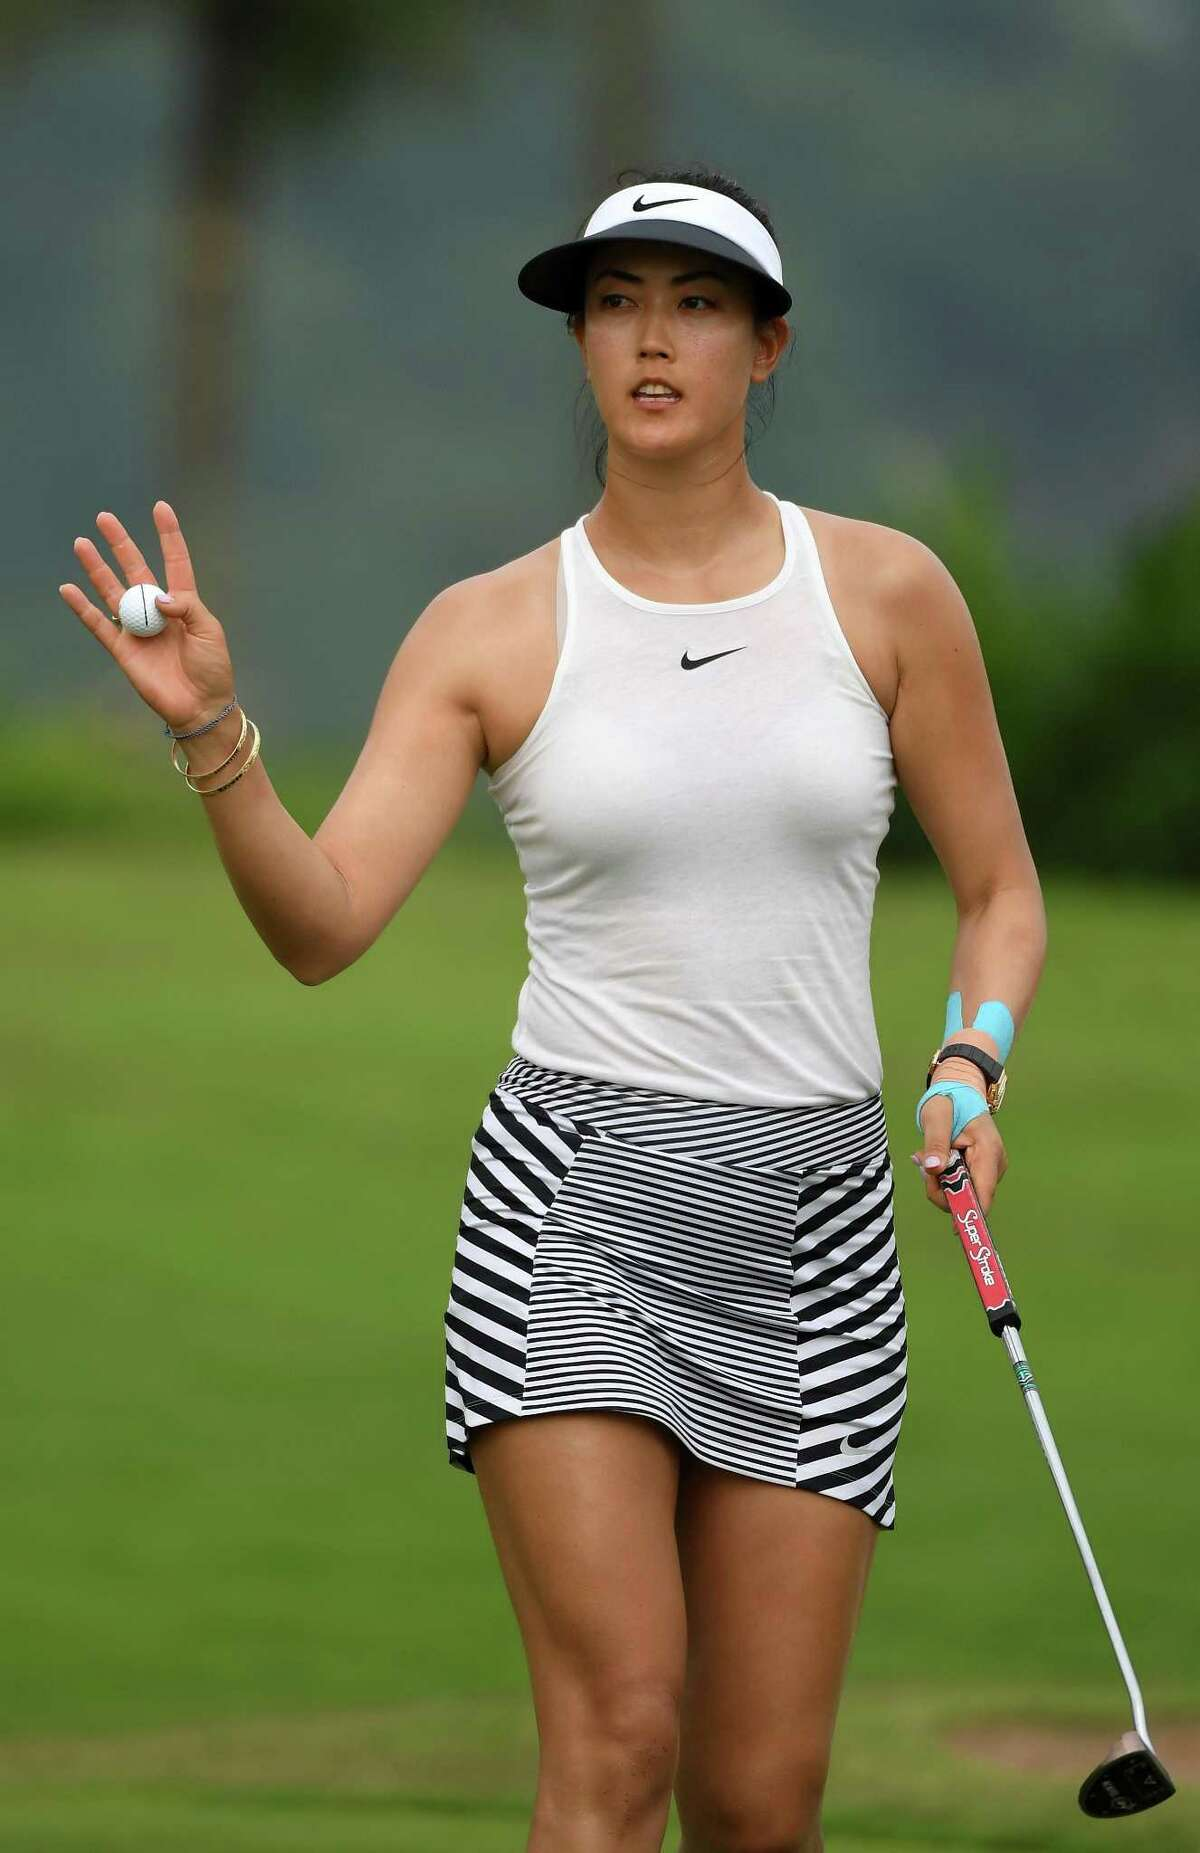 U.S. golfer Michelle Wie on the 18th hole during the recent HSBC Women's Champions in Singapore. She is emerging as a fashion leader in the sport, wearing more athletic gear and less traditional looks. (This Nike skirt is available at the Pro Shop at Sterling Farms Golf Course in Stamford.)